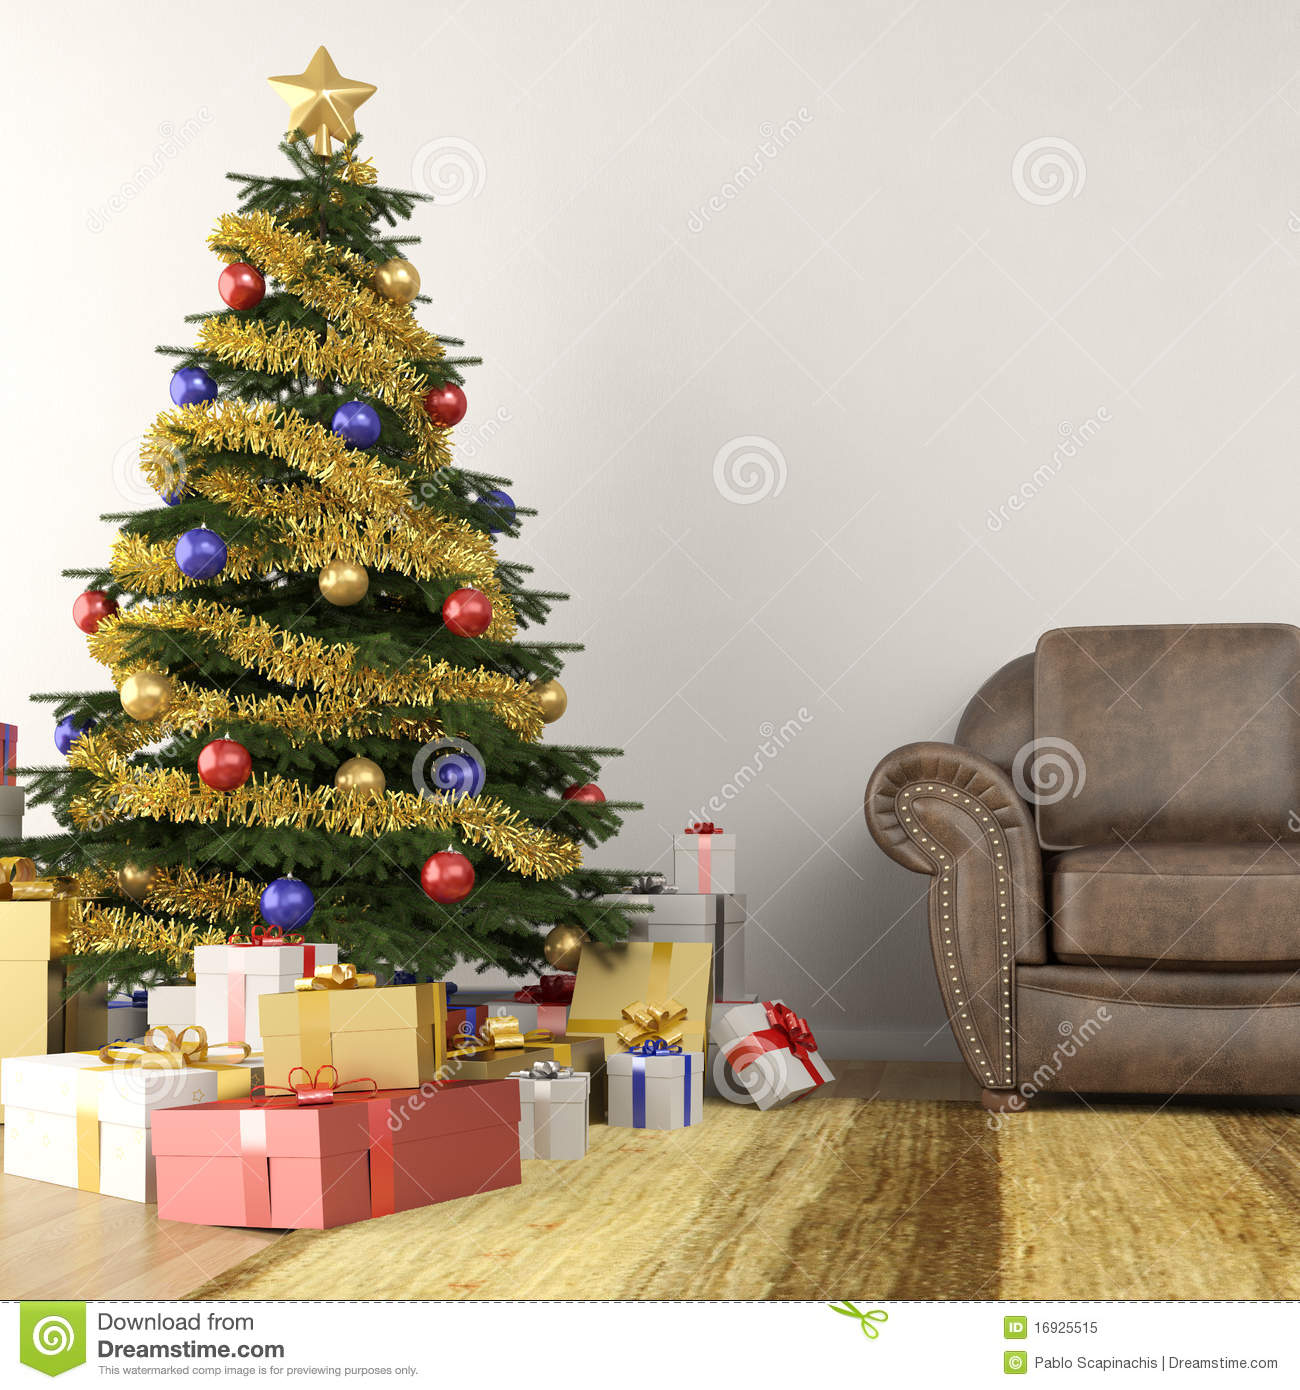 Christmas Tree Living Room christmas tree in living room royalty free stock photo - image